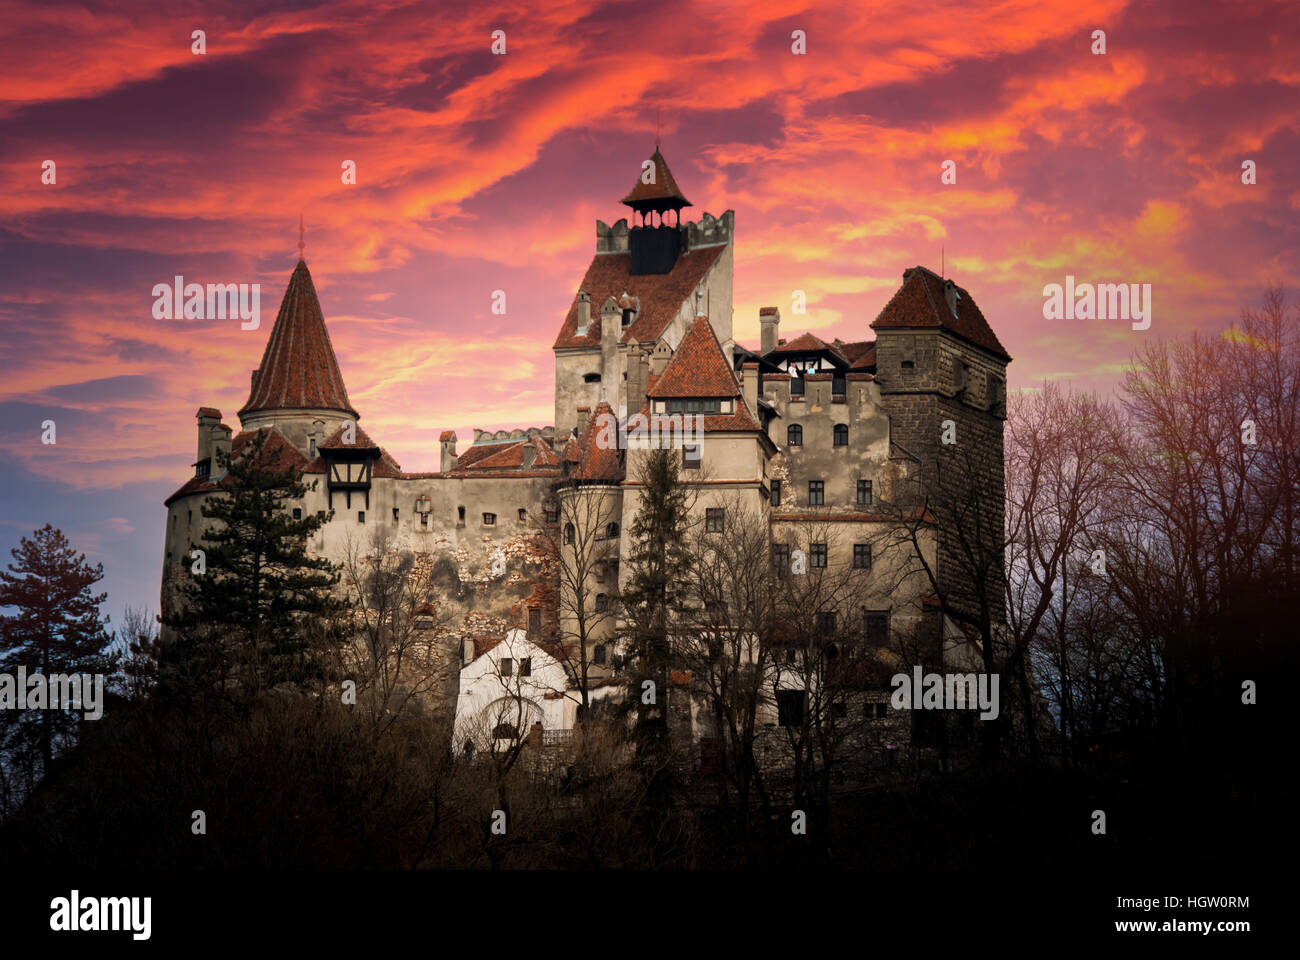 Bran Castle, Transylvania, Romania. Stunning sunset over the castle of Dracula. - Stock Image